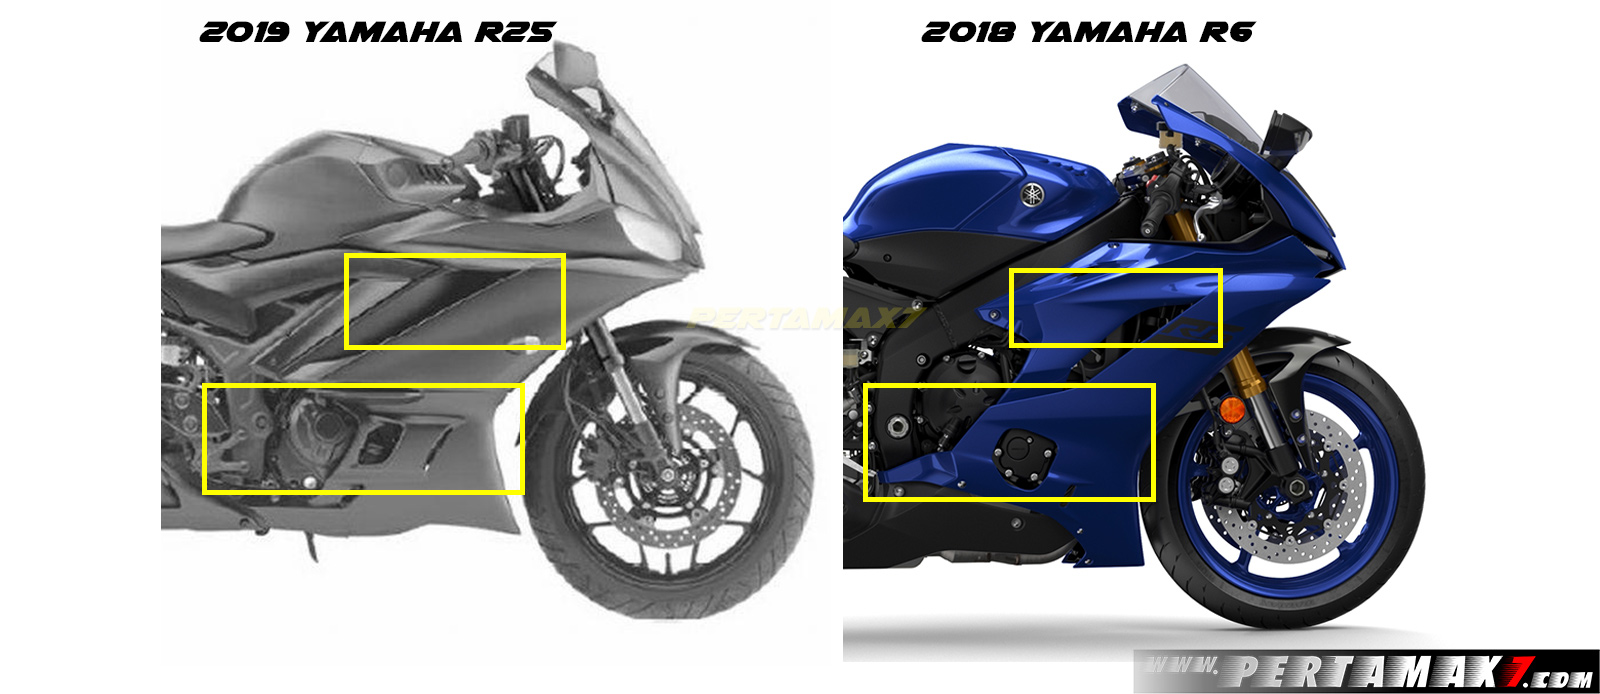 Fairing kanan Yamaha R25 Faeclift 2019 VS Yamaha R6 MY2018